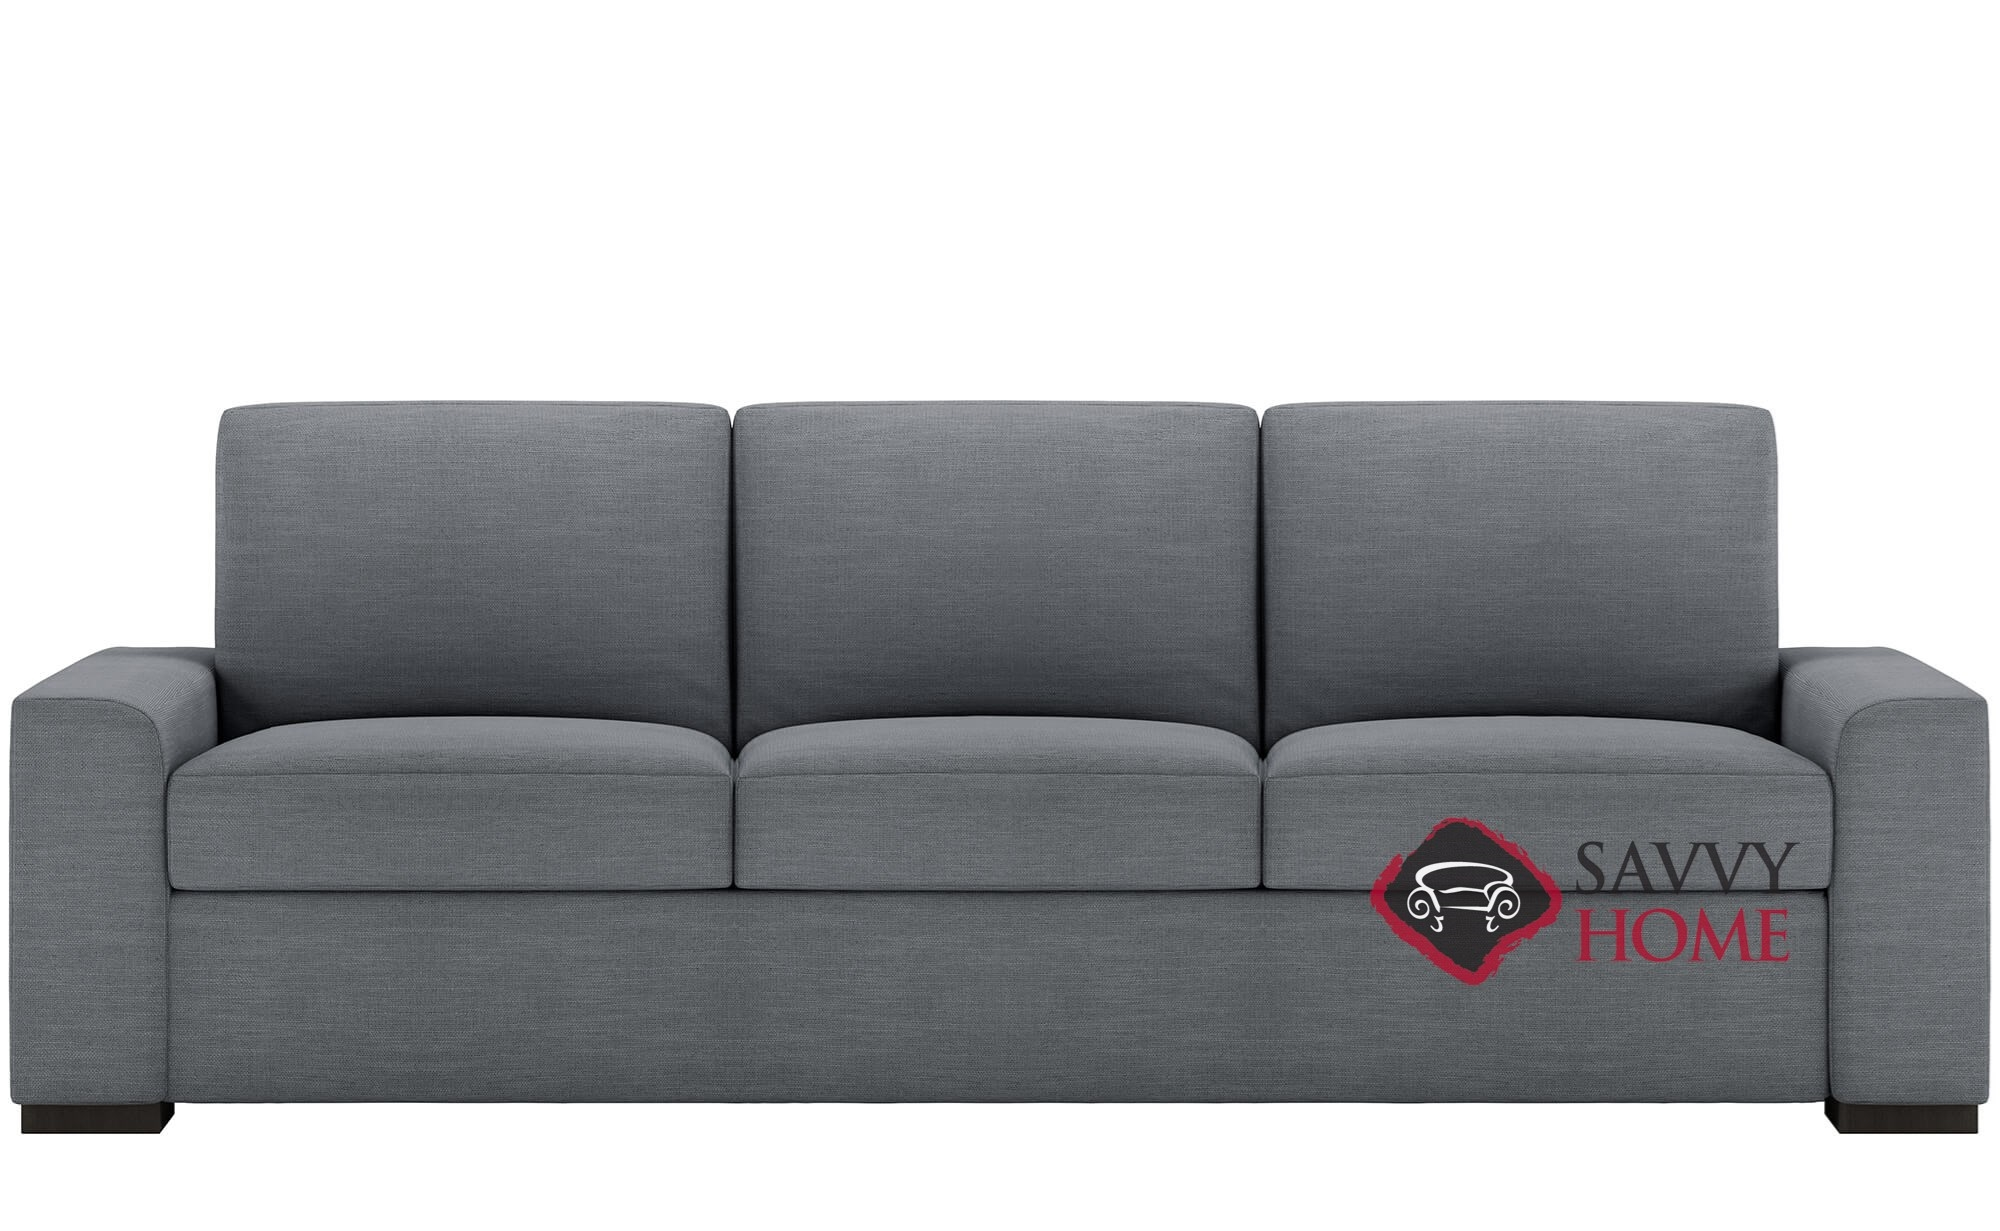 - Olson Fabric Sleeper Sofas King By American Leather Is Fully